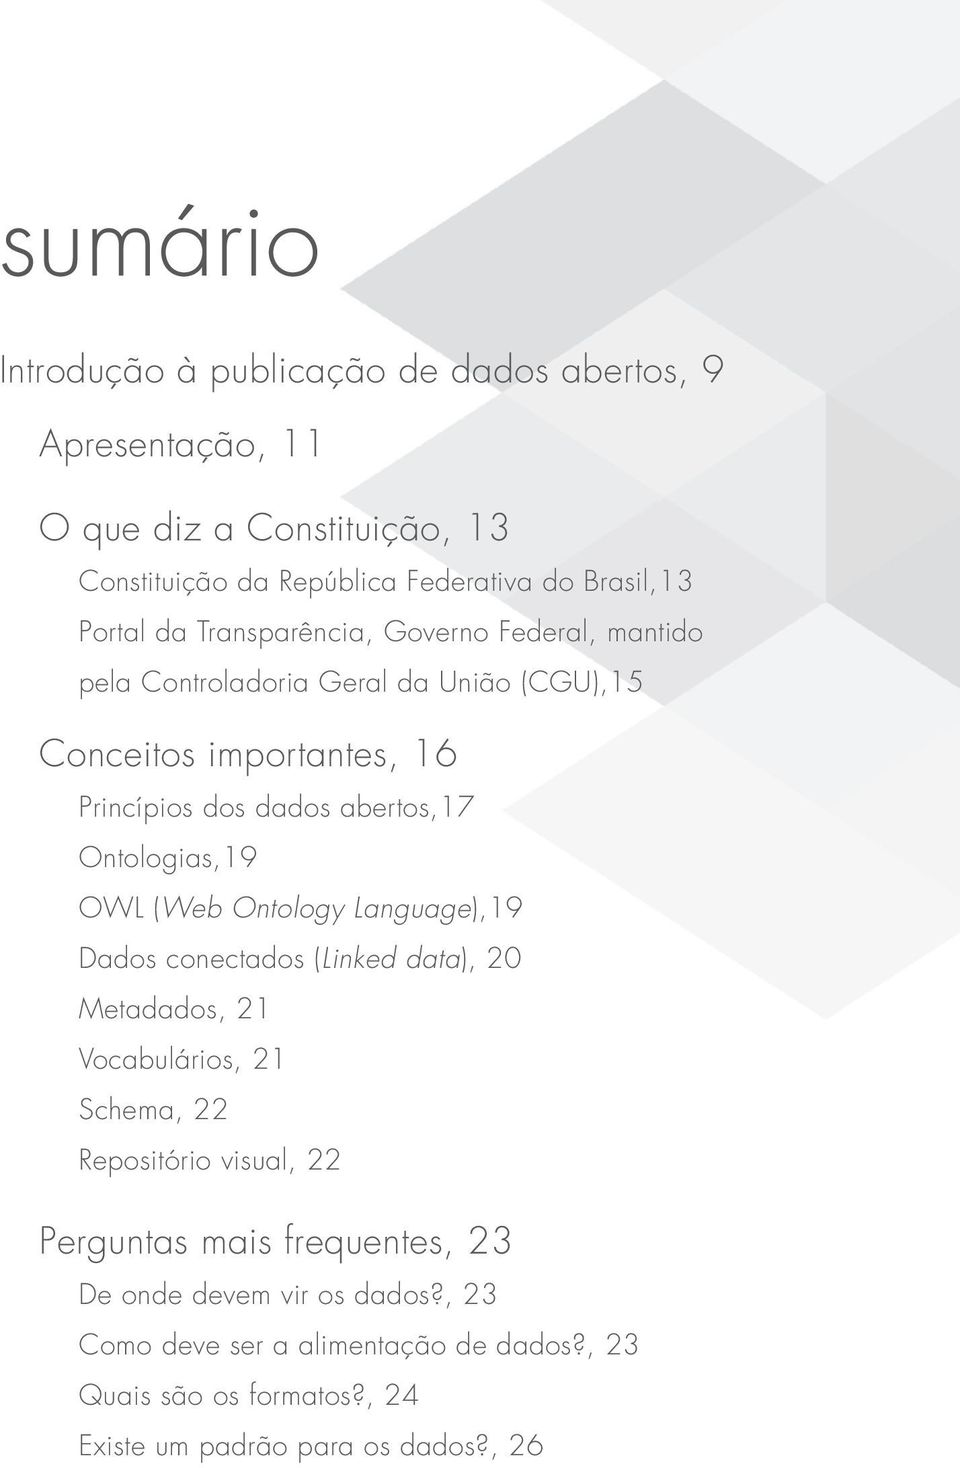 Ontologias,19 OWL (Web Ontology Language),19 Dados conectados (Linked data), 20 Metadados, 21 Vocabulários, 21 Schema, 22 Repositório visual, 22